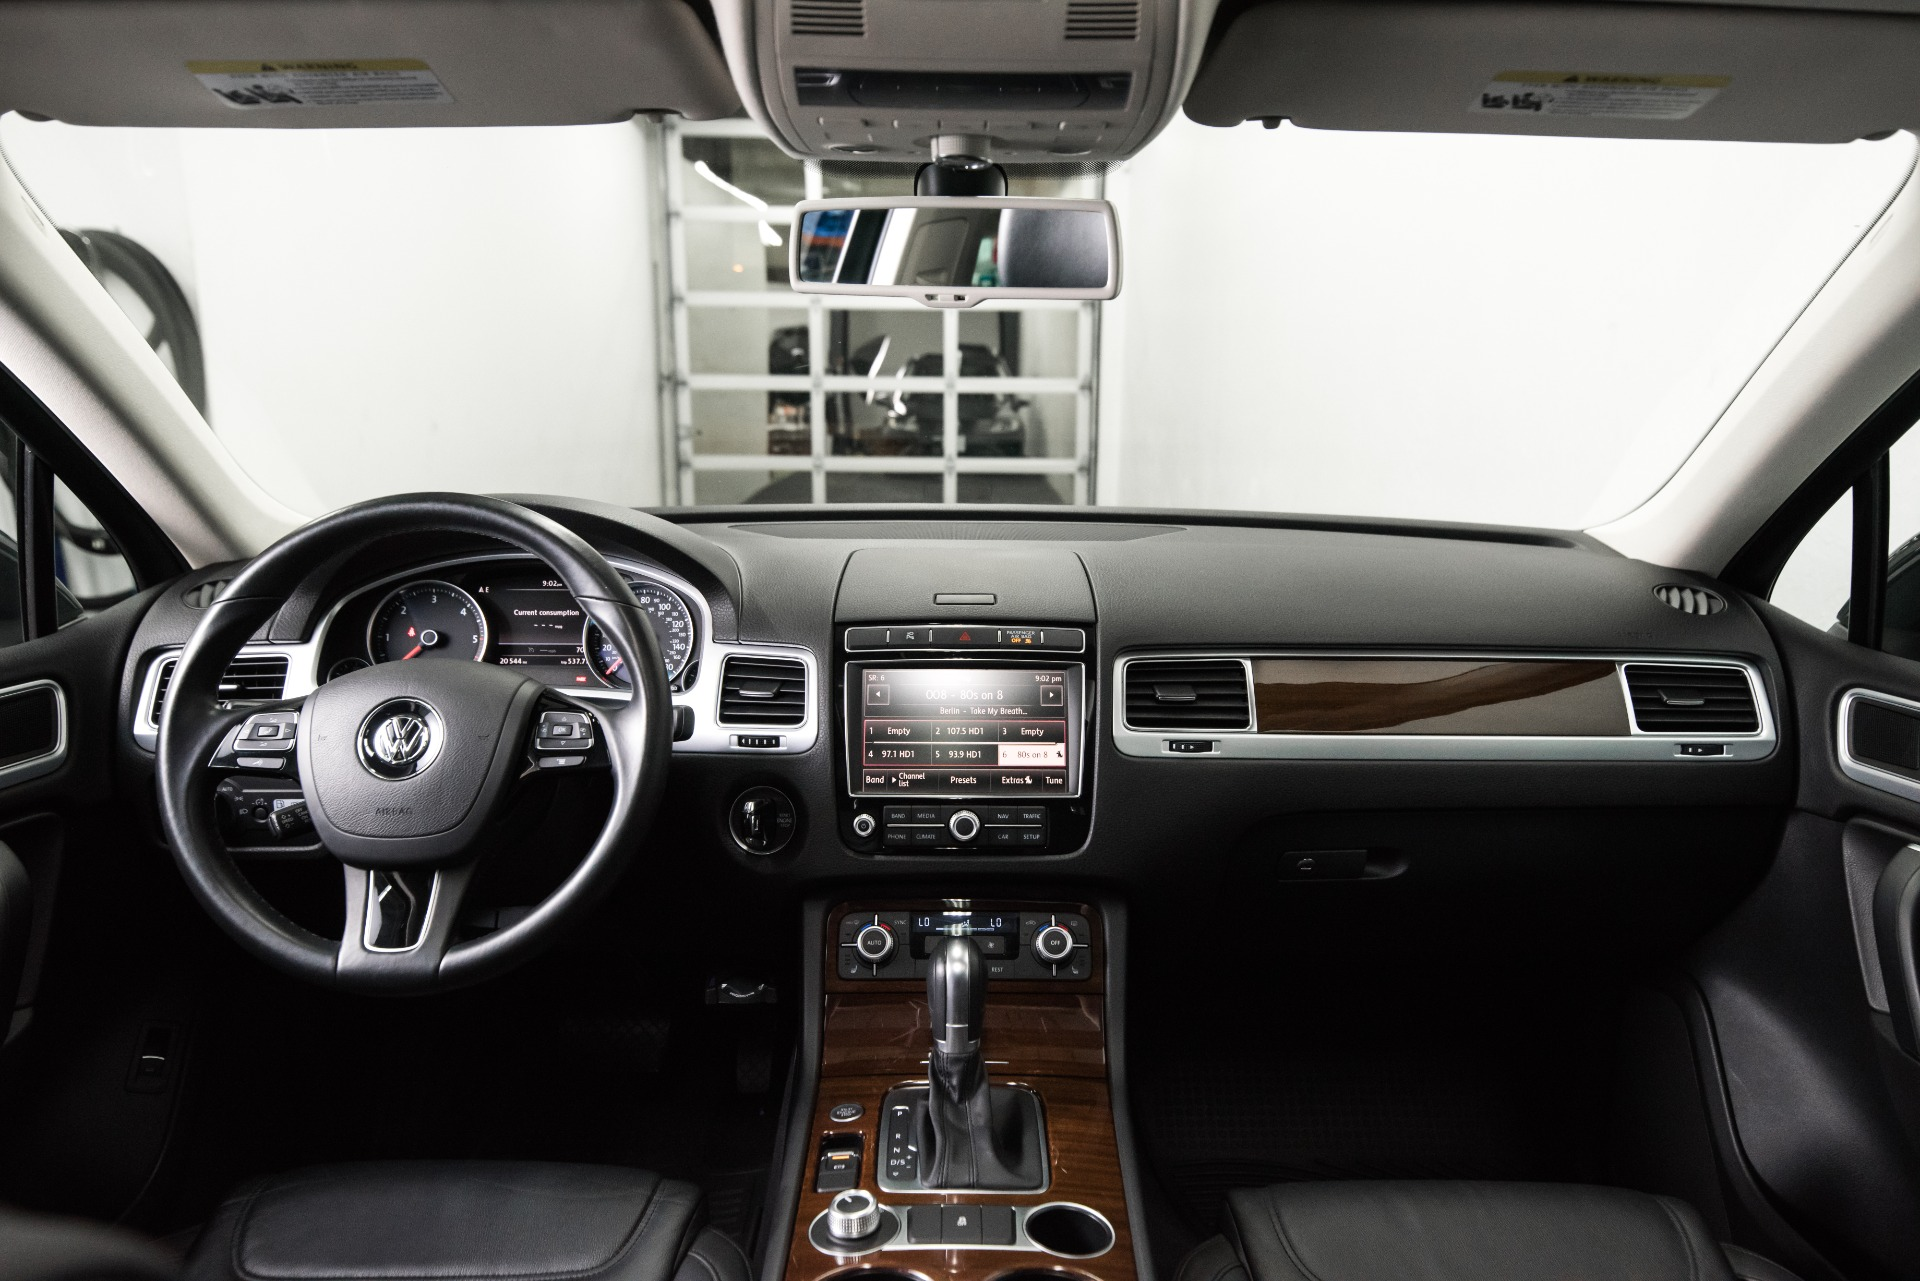 Used 2015 Volkswagen Touareg TDI Lux Used 2015 Volkswagen Touareg TDI Lux for sale Sold at Response Motors in Mountain View CA 13